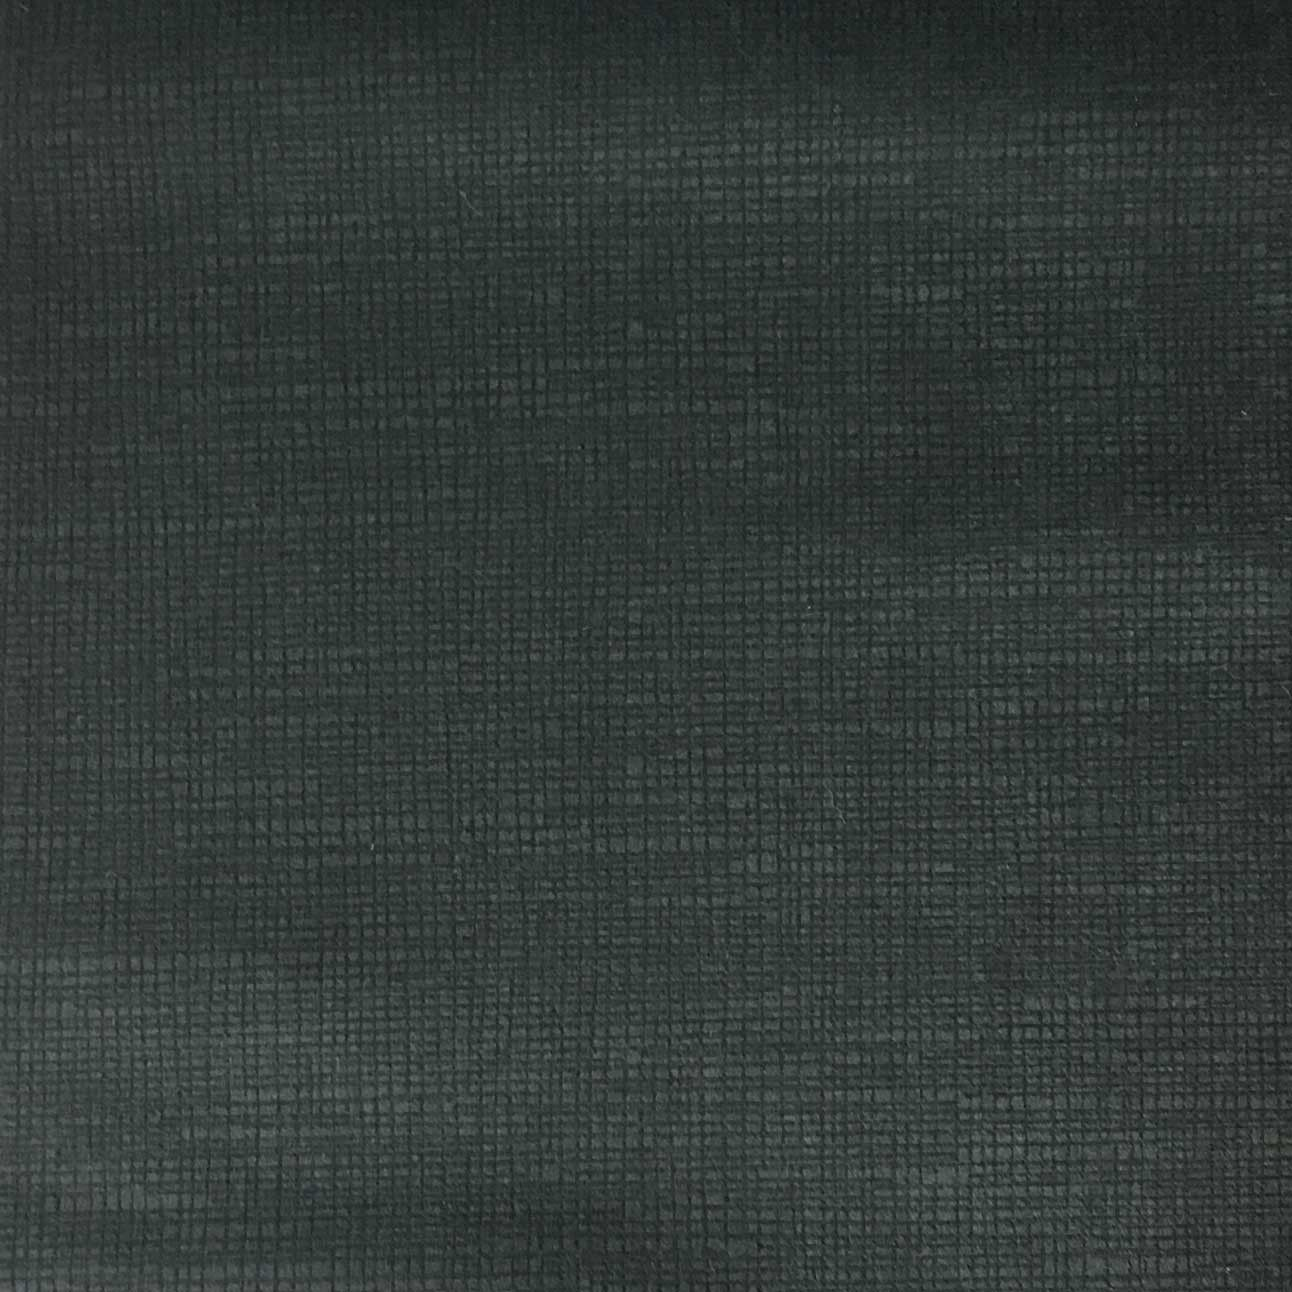 Creek Textured Microfiber Velvet Upholstery Fabric By The Yard